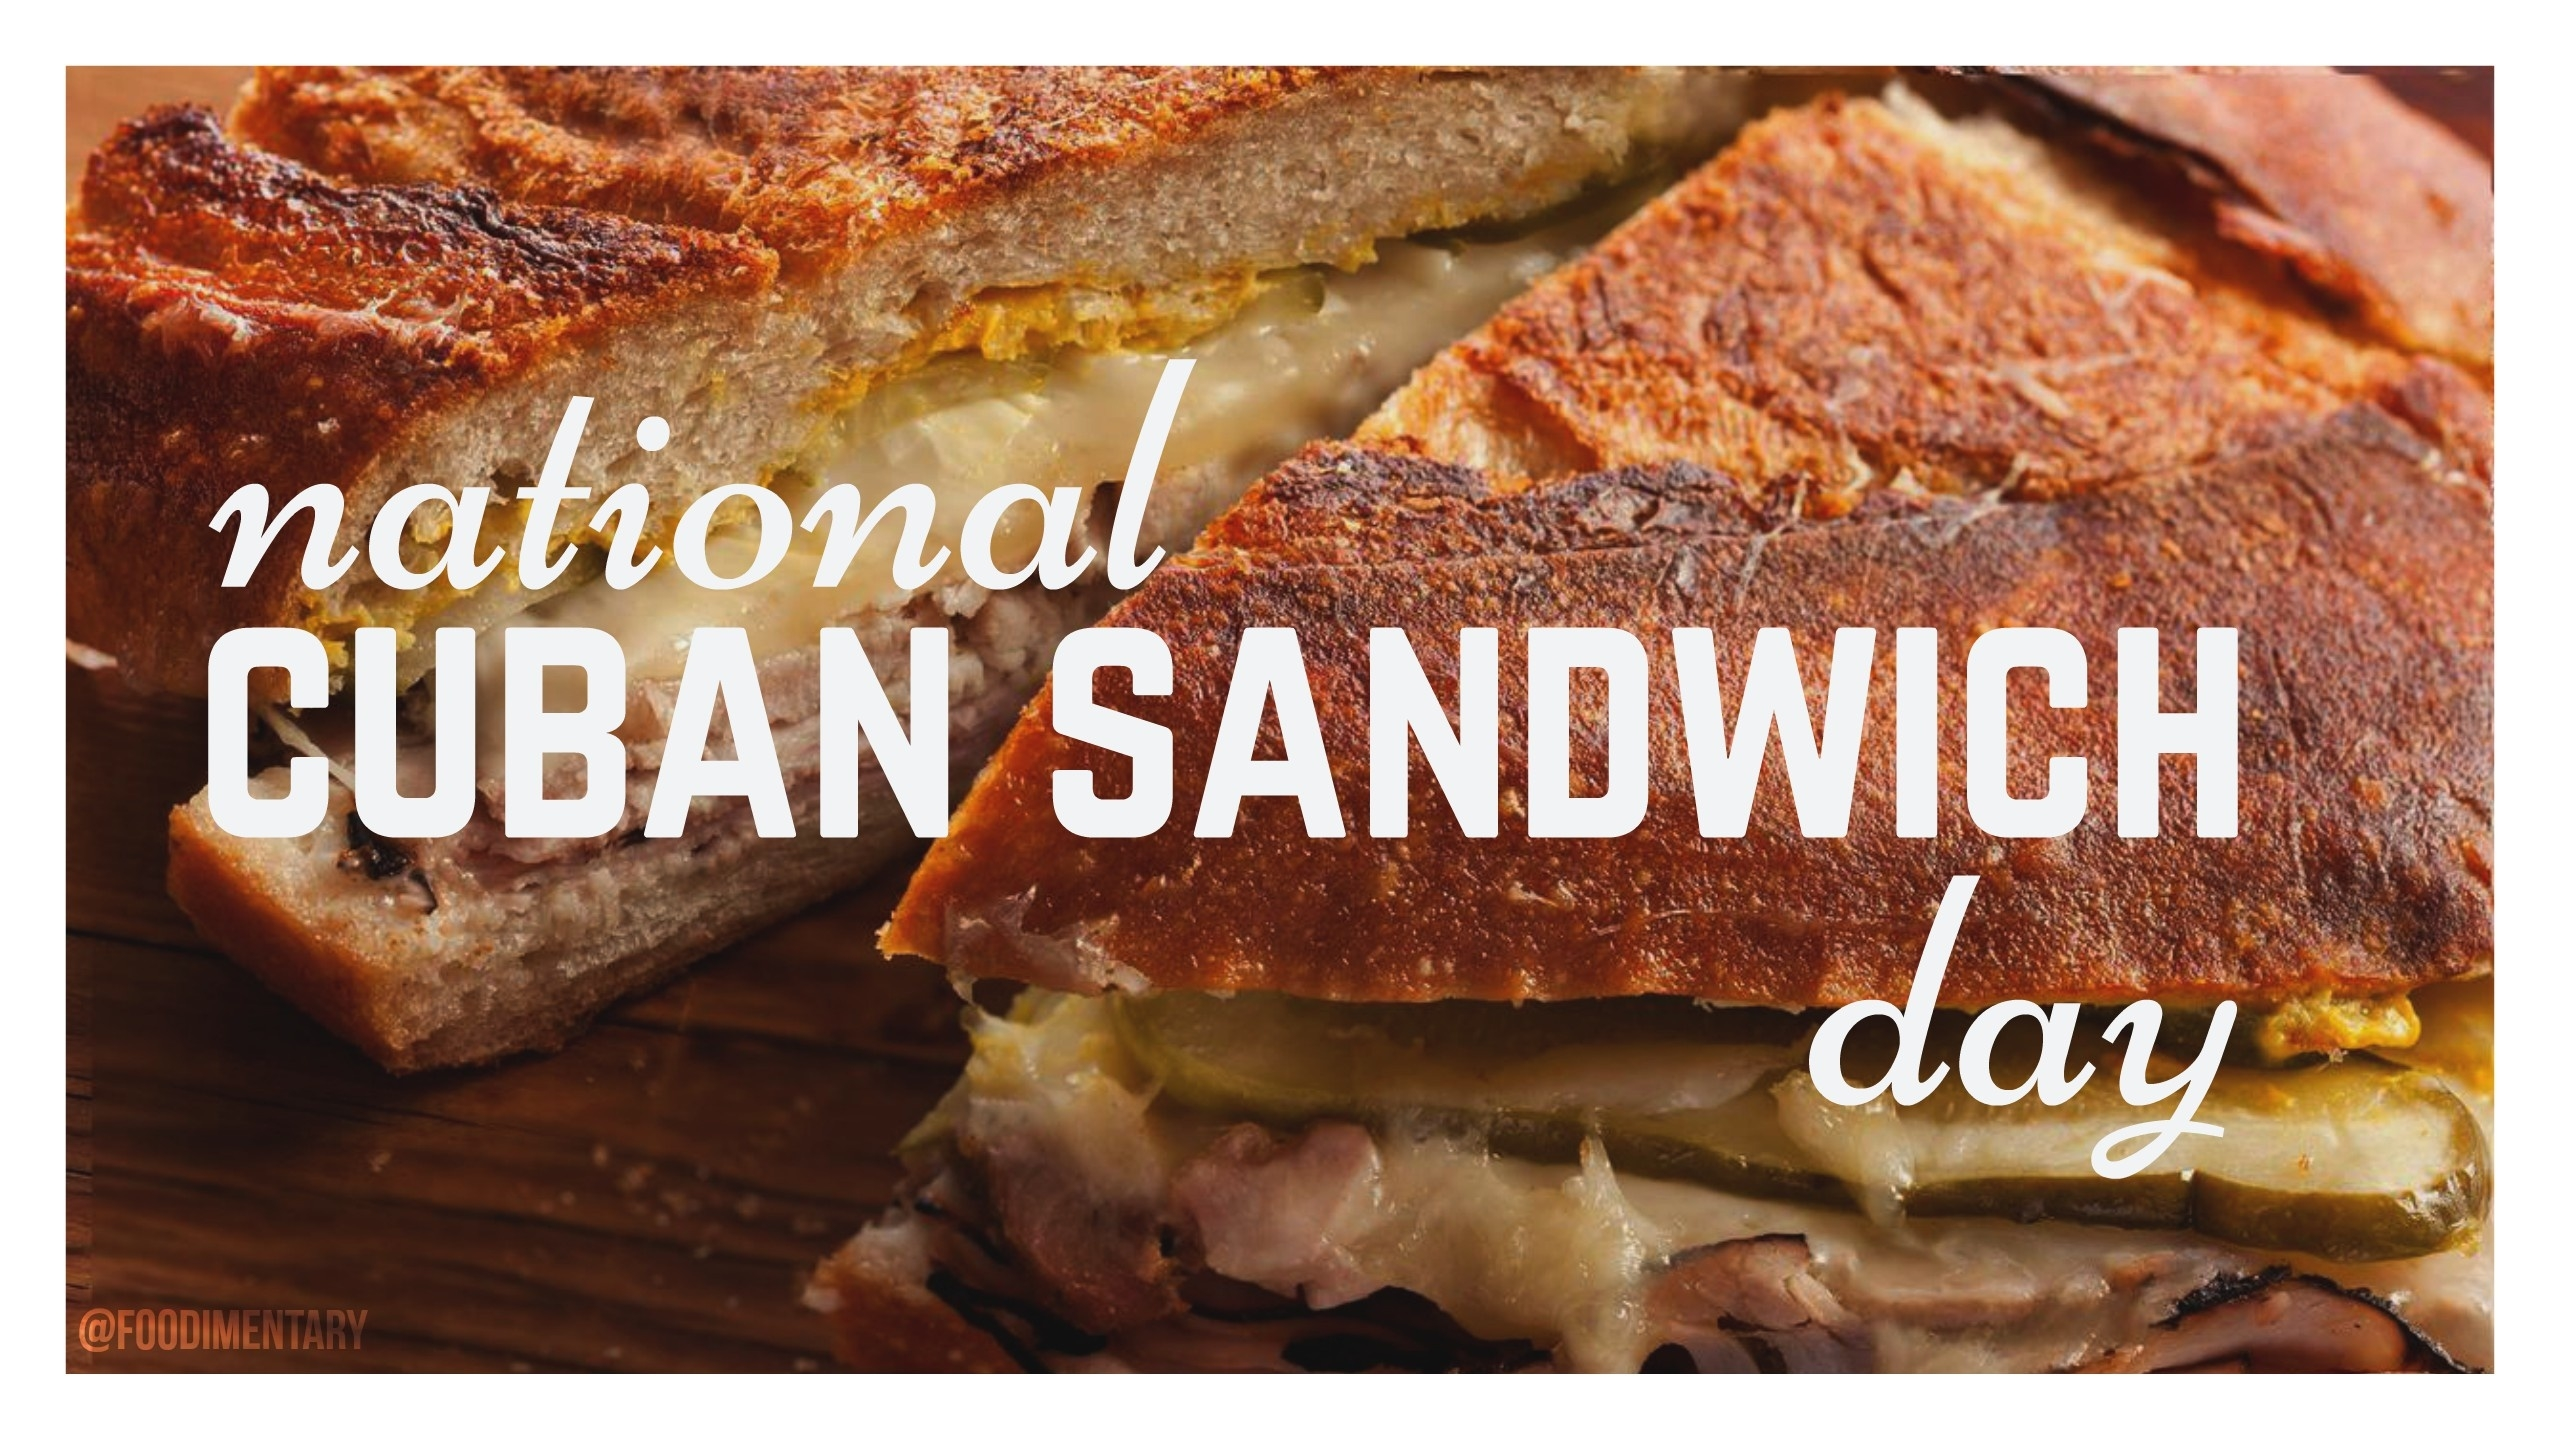 August 23Rd Is National Cuban Sandwich Day!   Foodimentary  Images National Day August 23